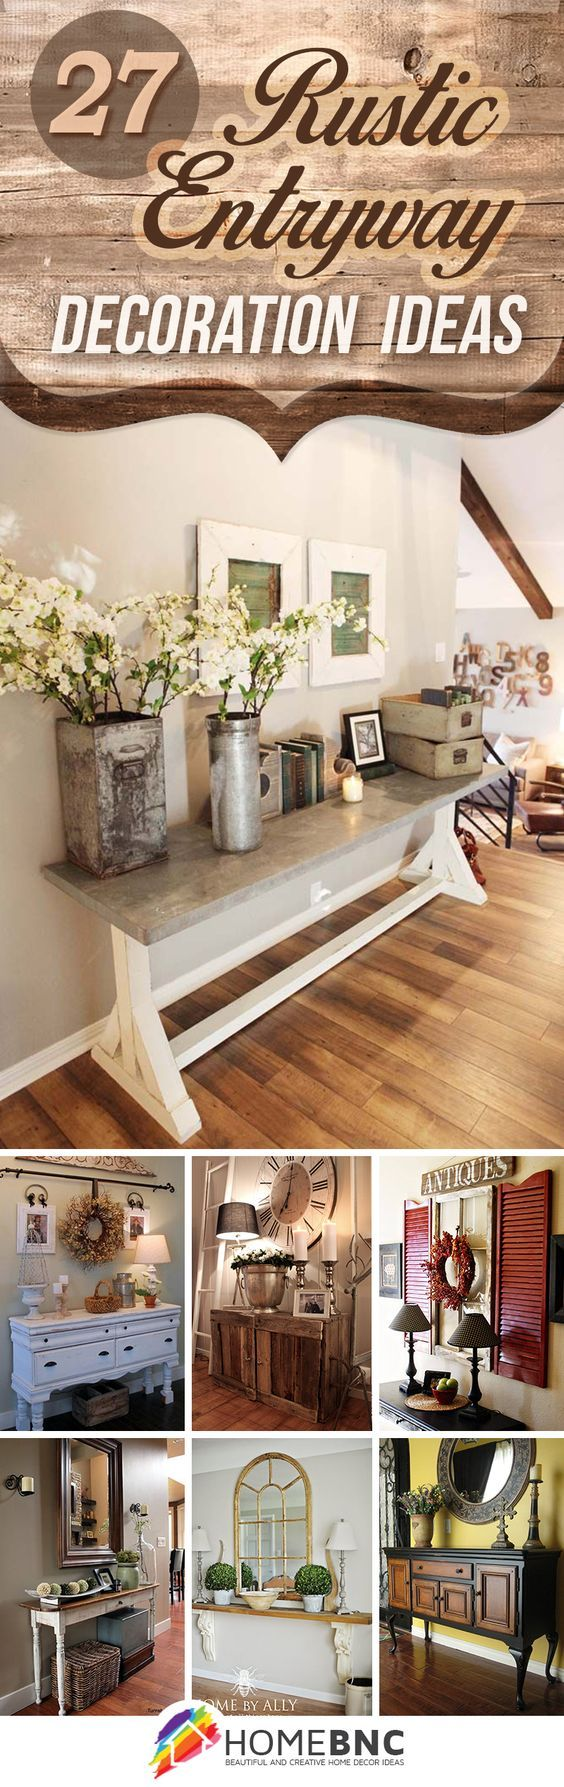 Lovely Best 25+ Rustic Entryway Ideas On Pinterest | Foyer Table Decor, Entryway  Decor And Entry Table Decorations